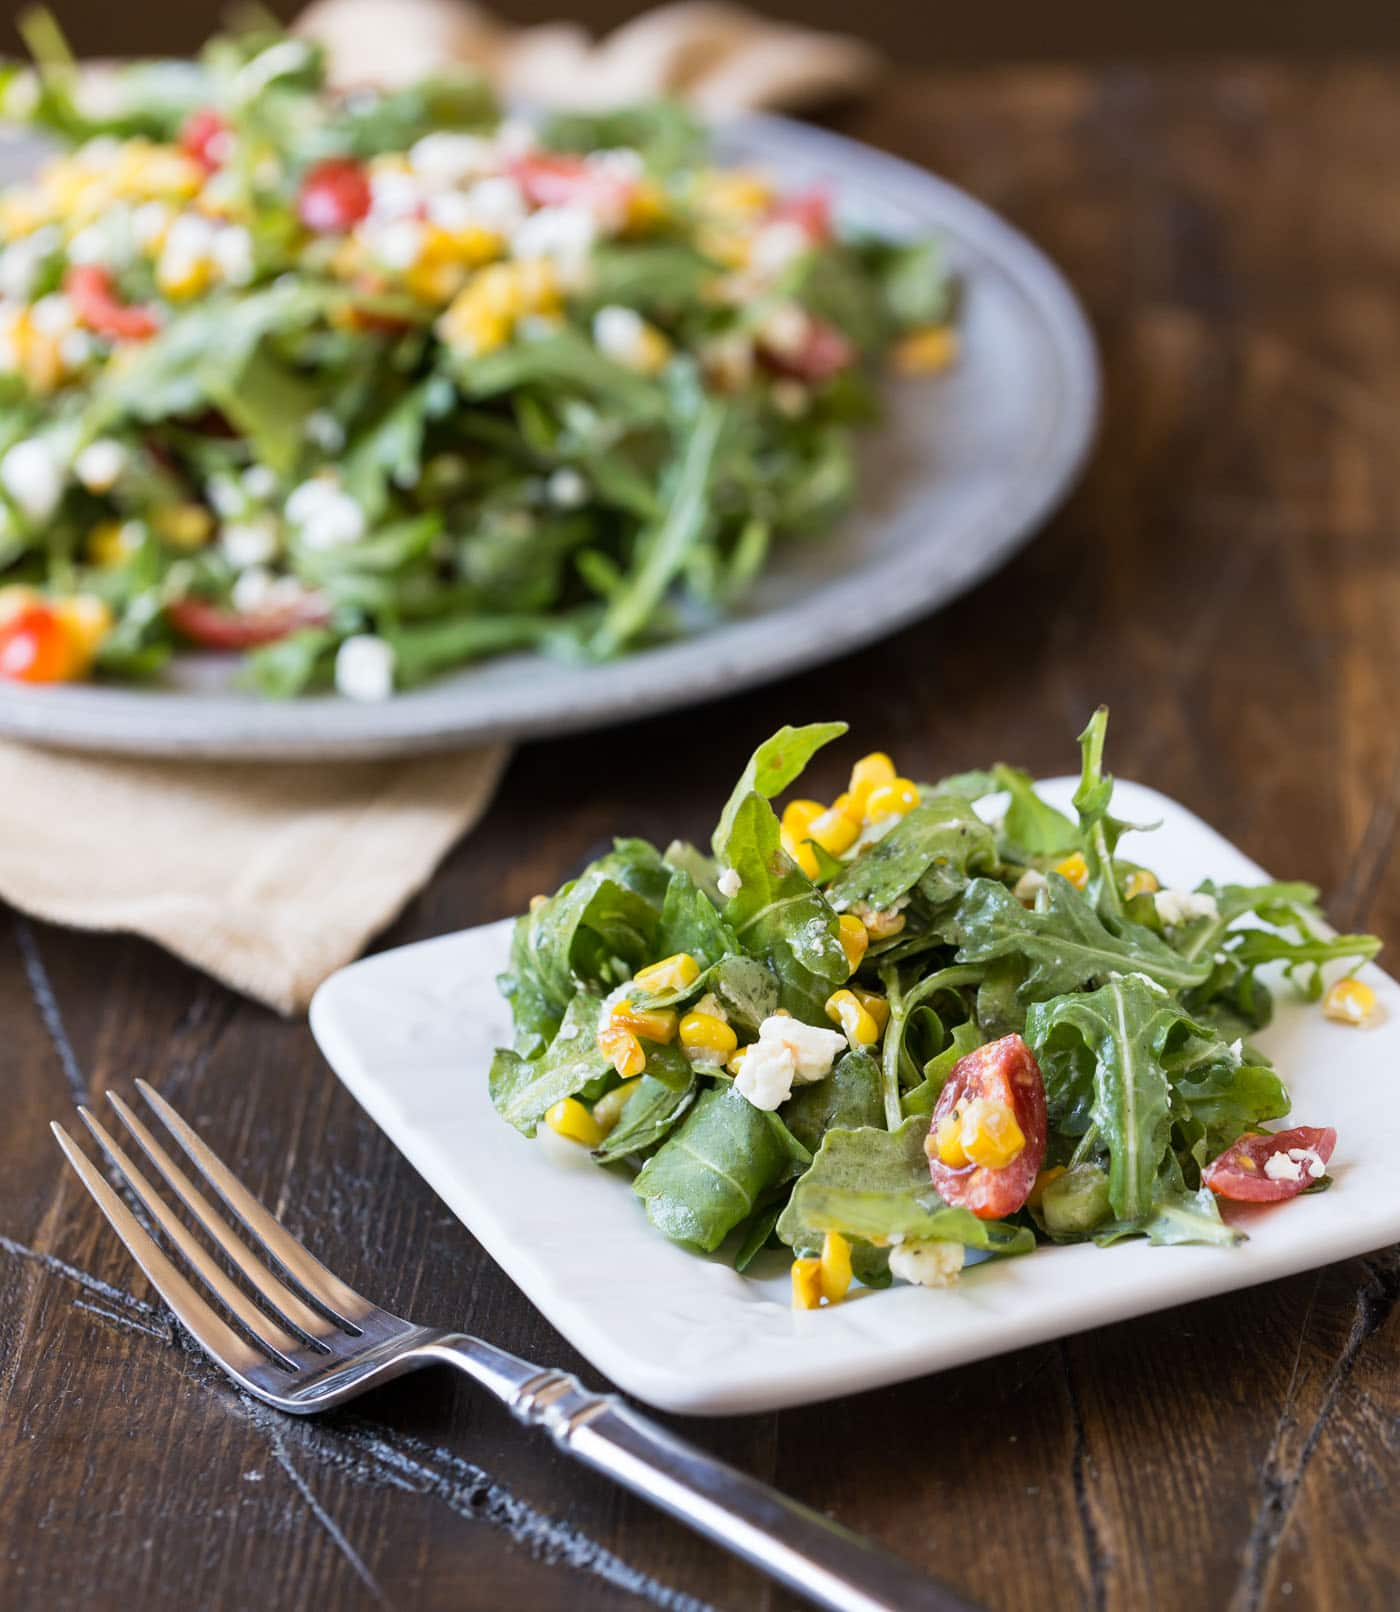 A plate of arugula salad with corn and tomatoes.